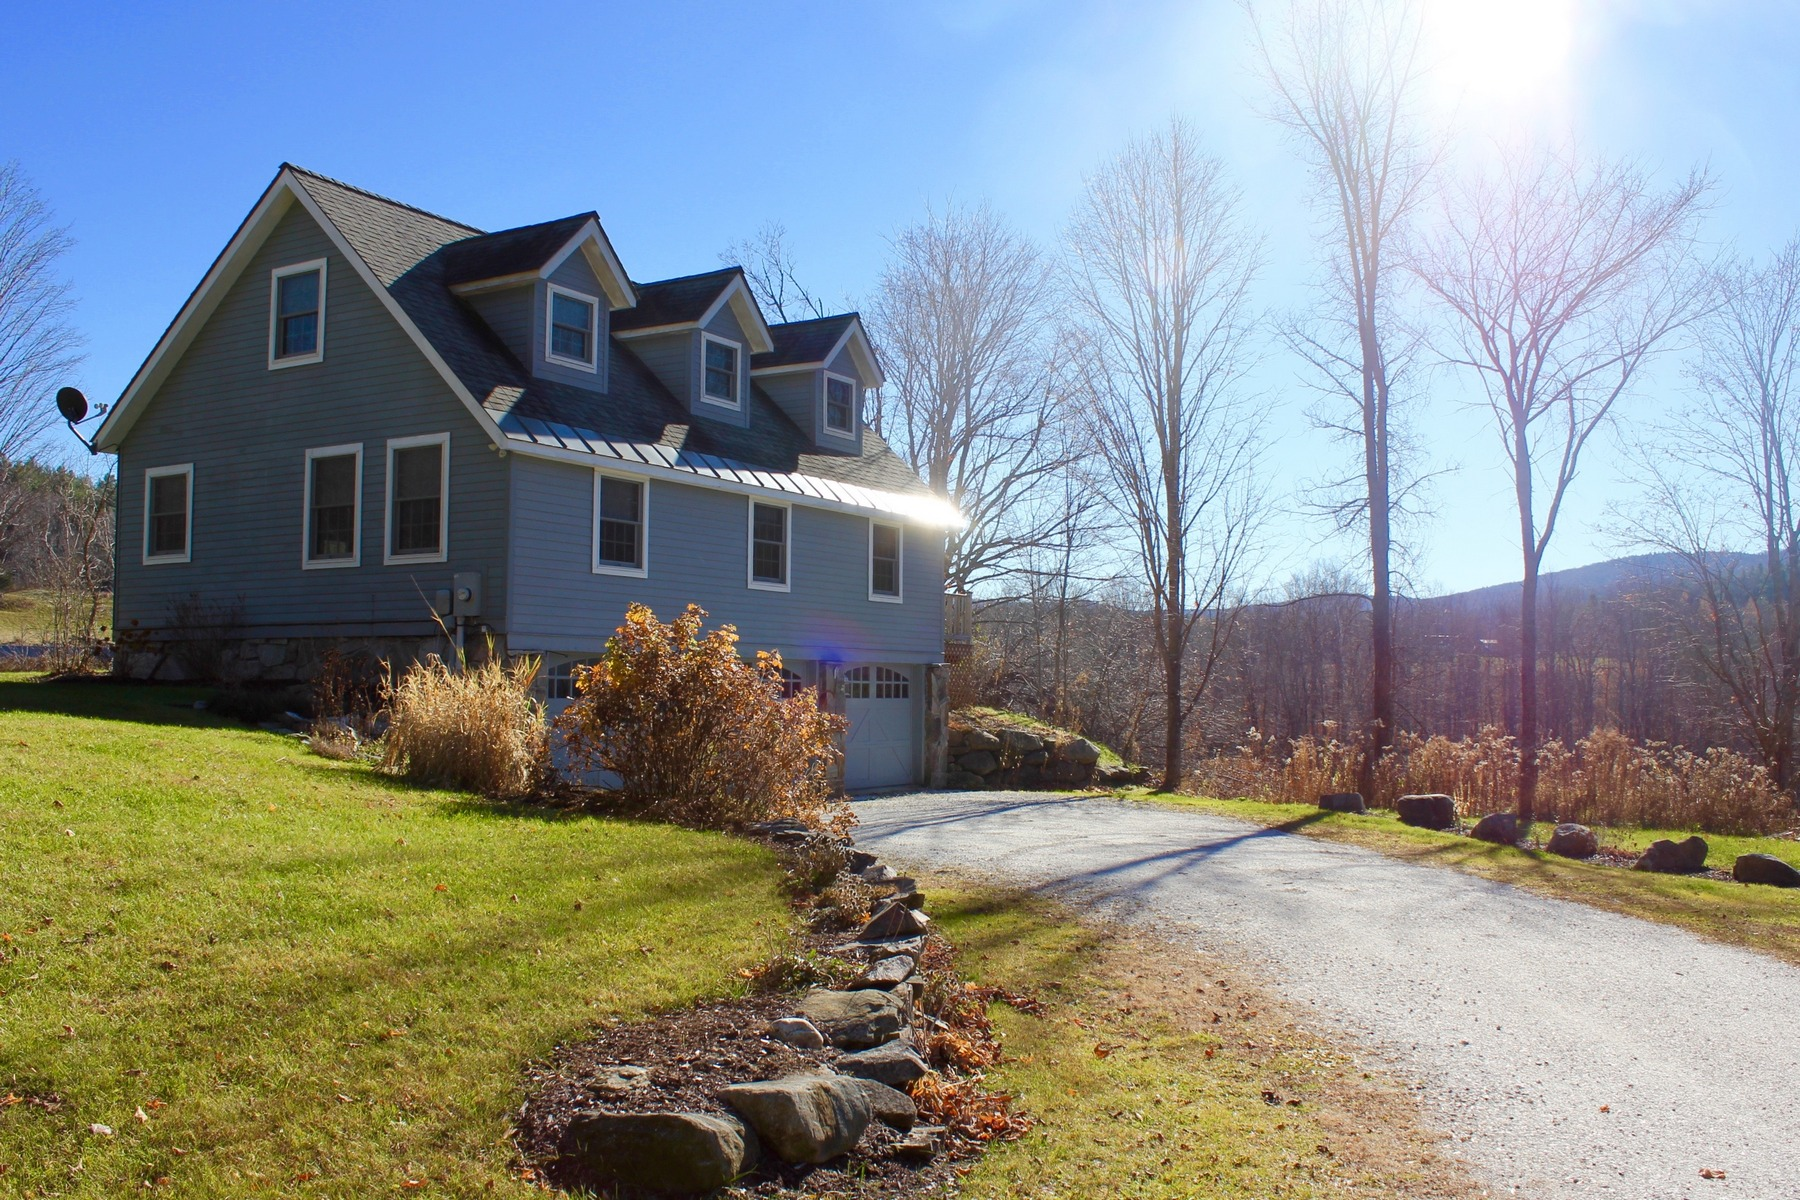 Casa Unifamiliar por un Venta en Quiet Country Setting 917 Tarbellville Rd Mount Holly, Vermont 05758 Estados Unidos